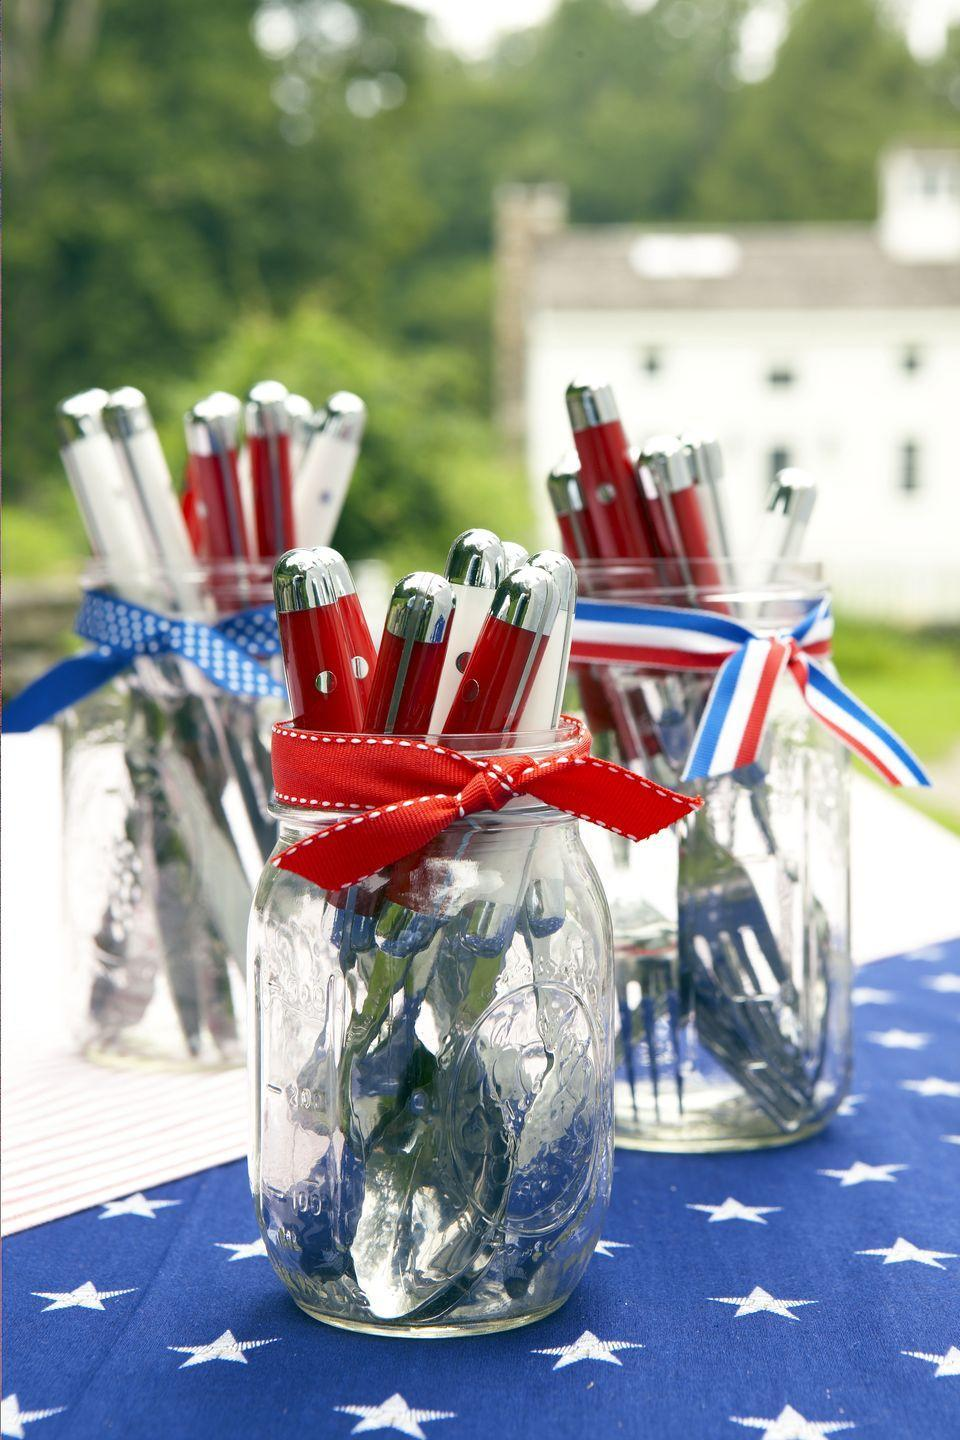 <p>Help guests move through the buffet line quickly with grab-and-go silverware in decorated Mason jars. Just tie ribbon remnants on a trio of vases and fill with reusable flatware. </p>